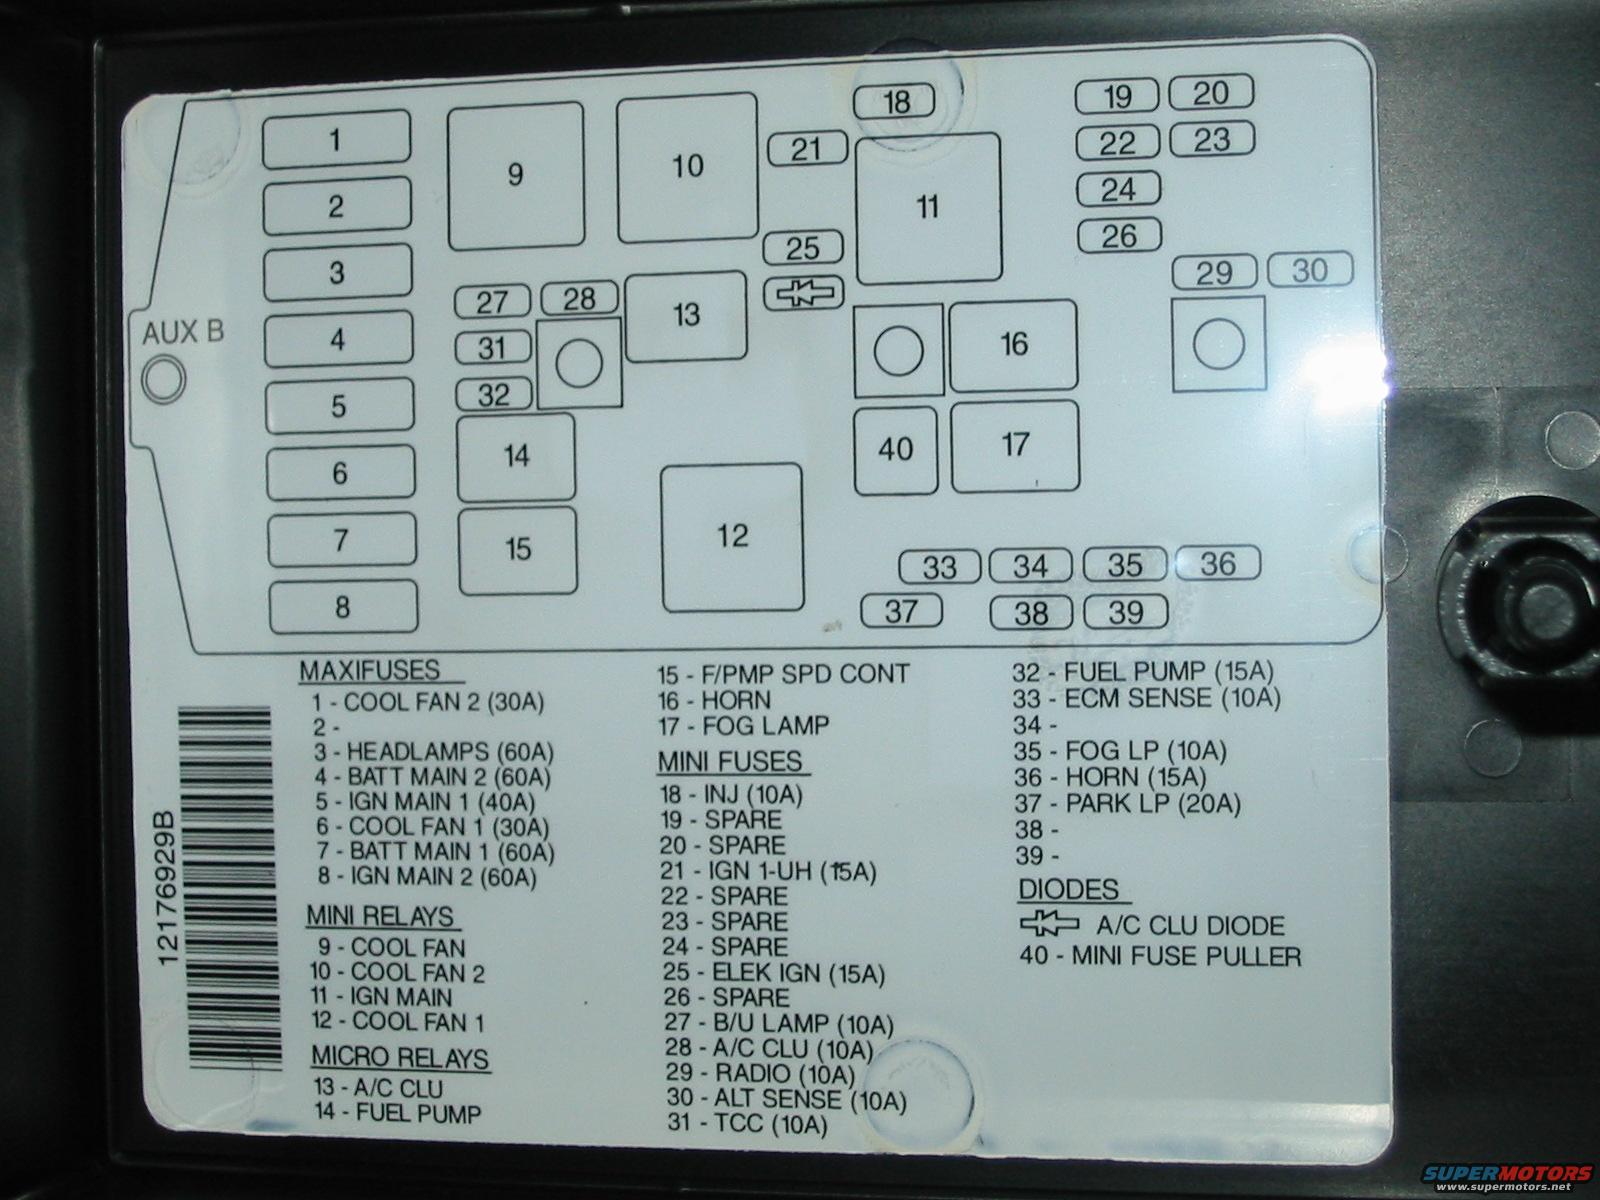 fuse relay panel diagram speedometer stops working in neutral page 2 2006 pontiac grand prix fuse box location at mr168.co